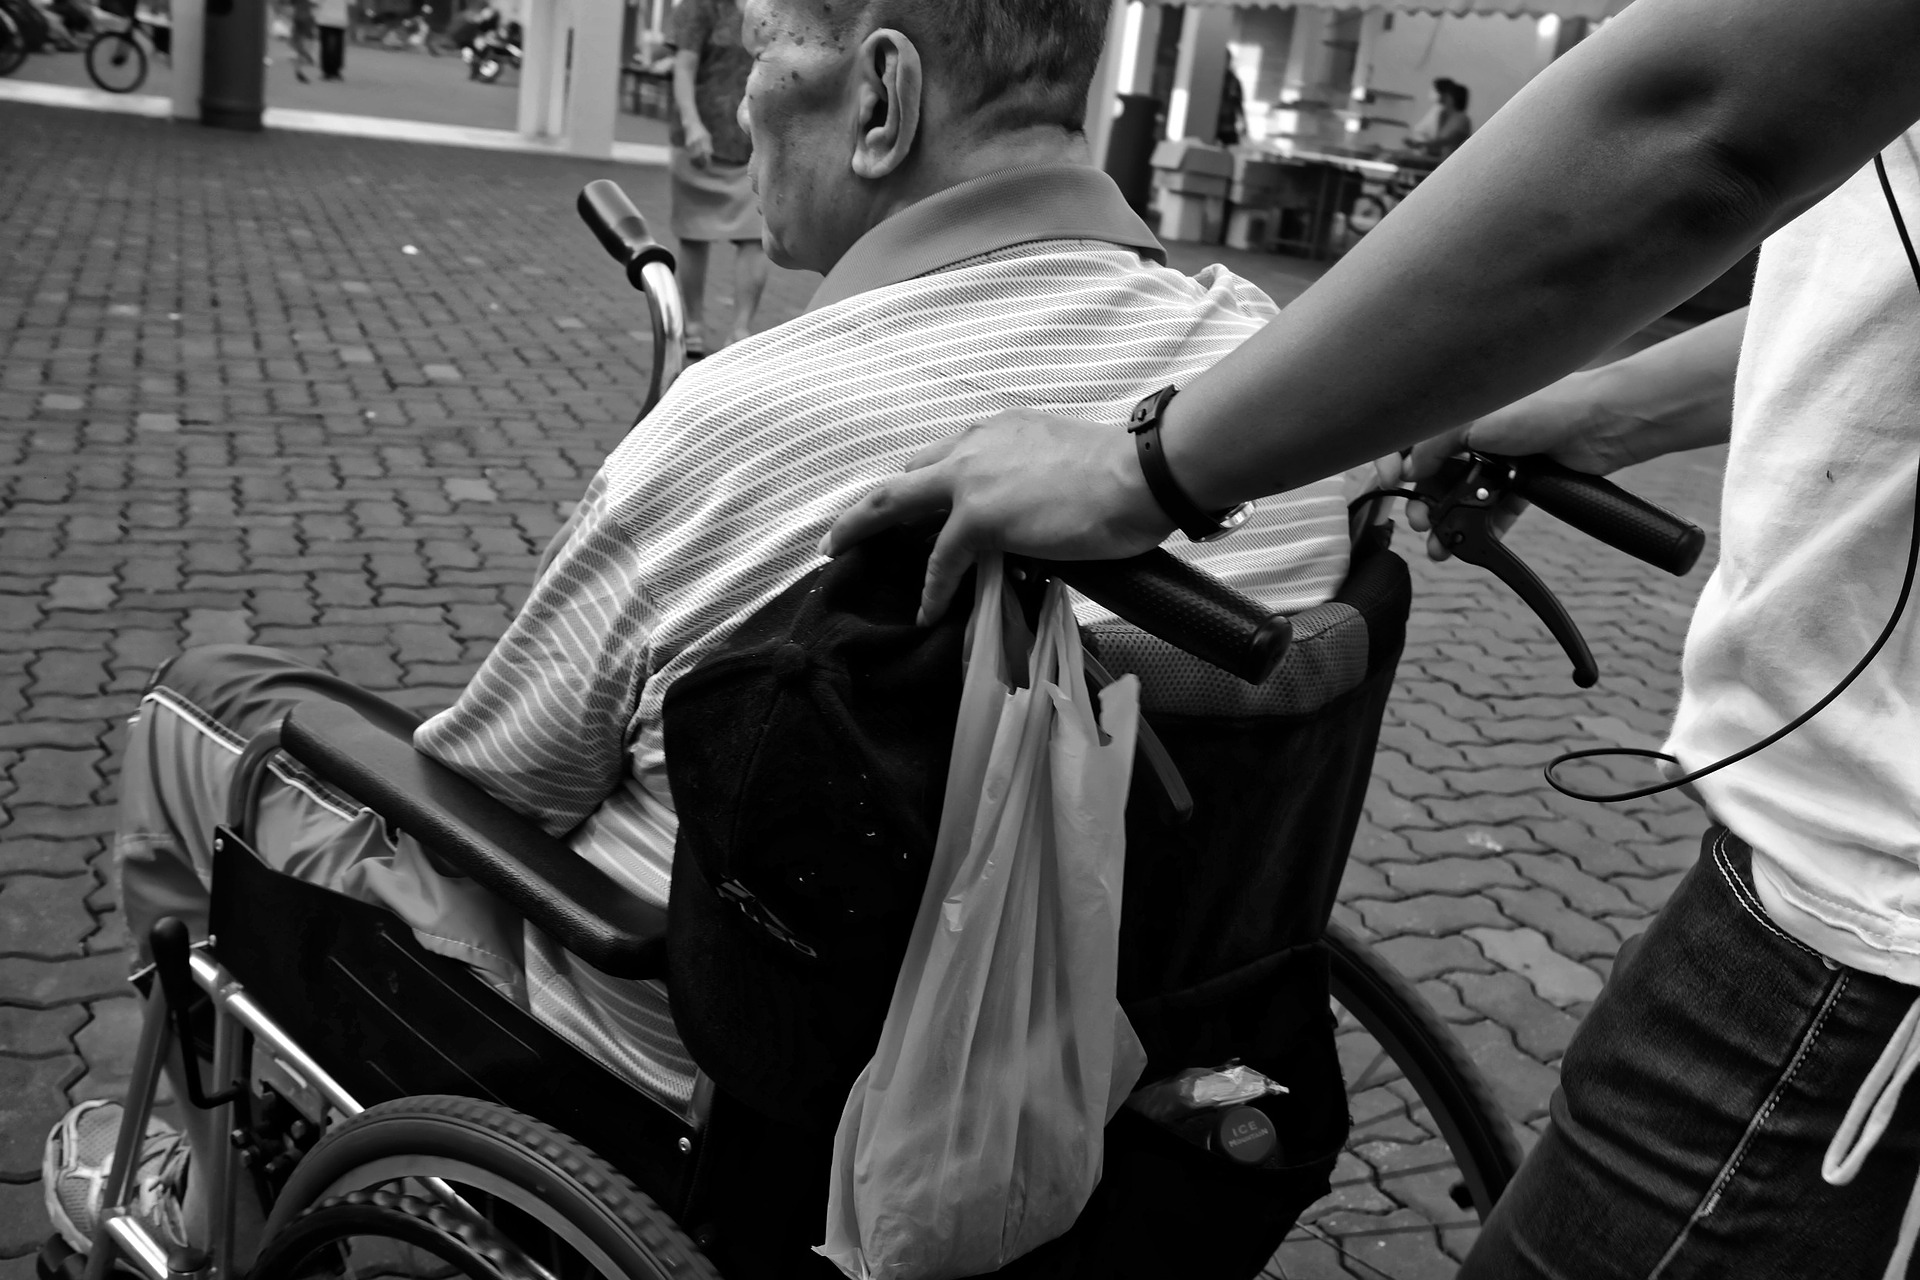 A man in a wheelchair being pushed by another person